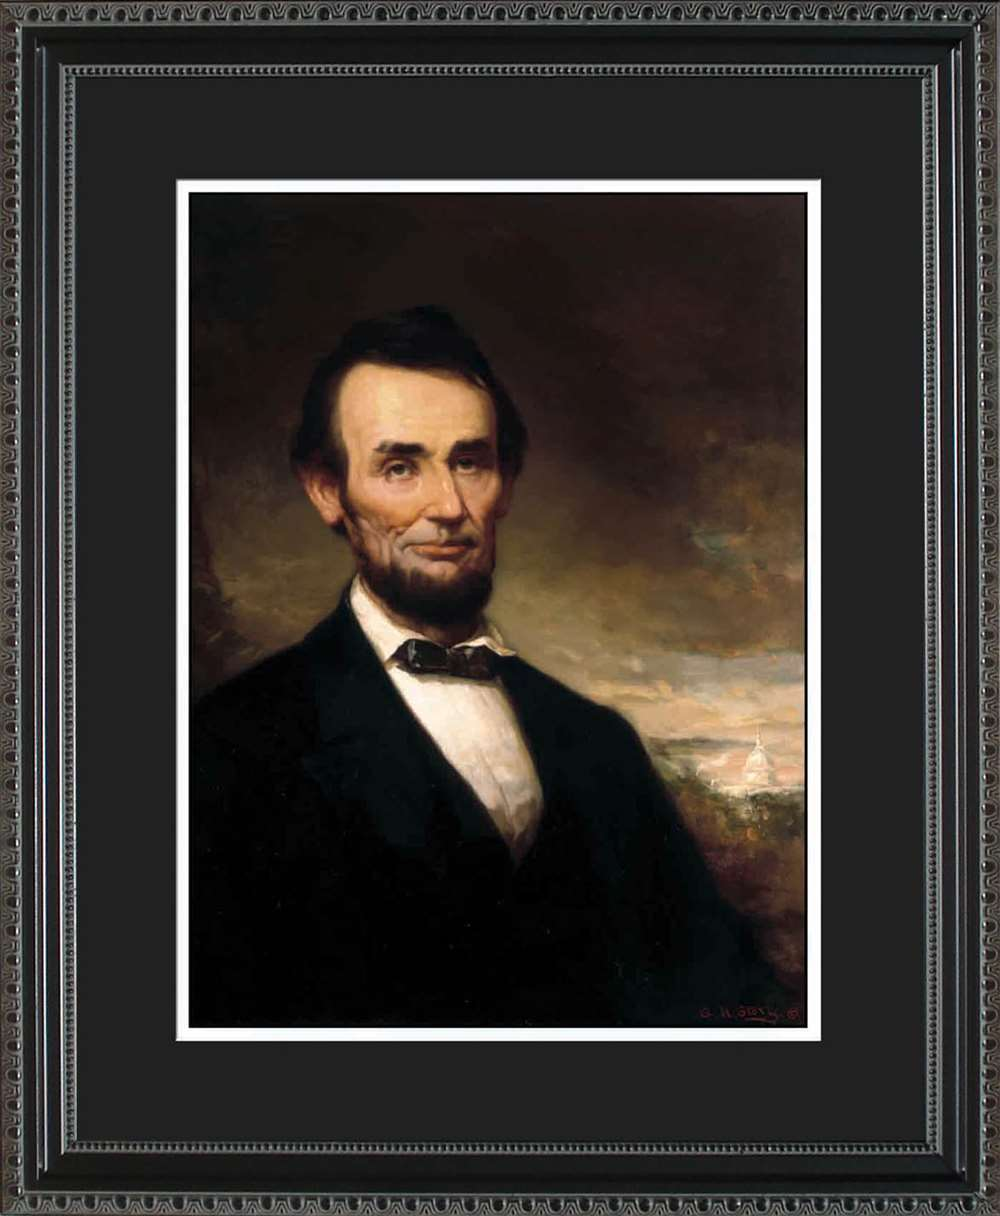 Abraham Lincoln Portrait, 16x20